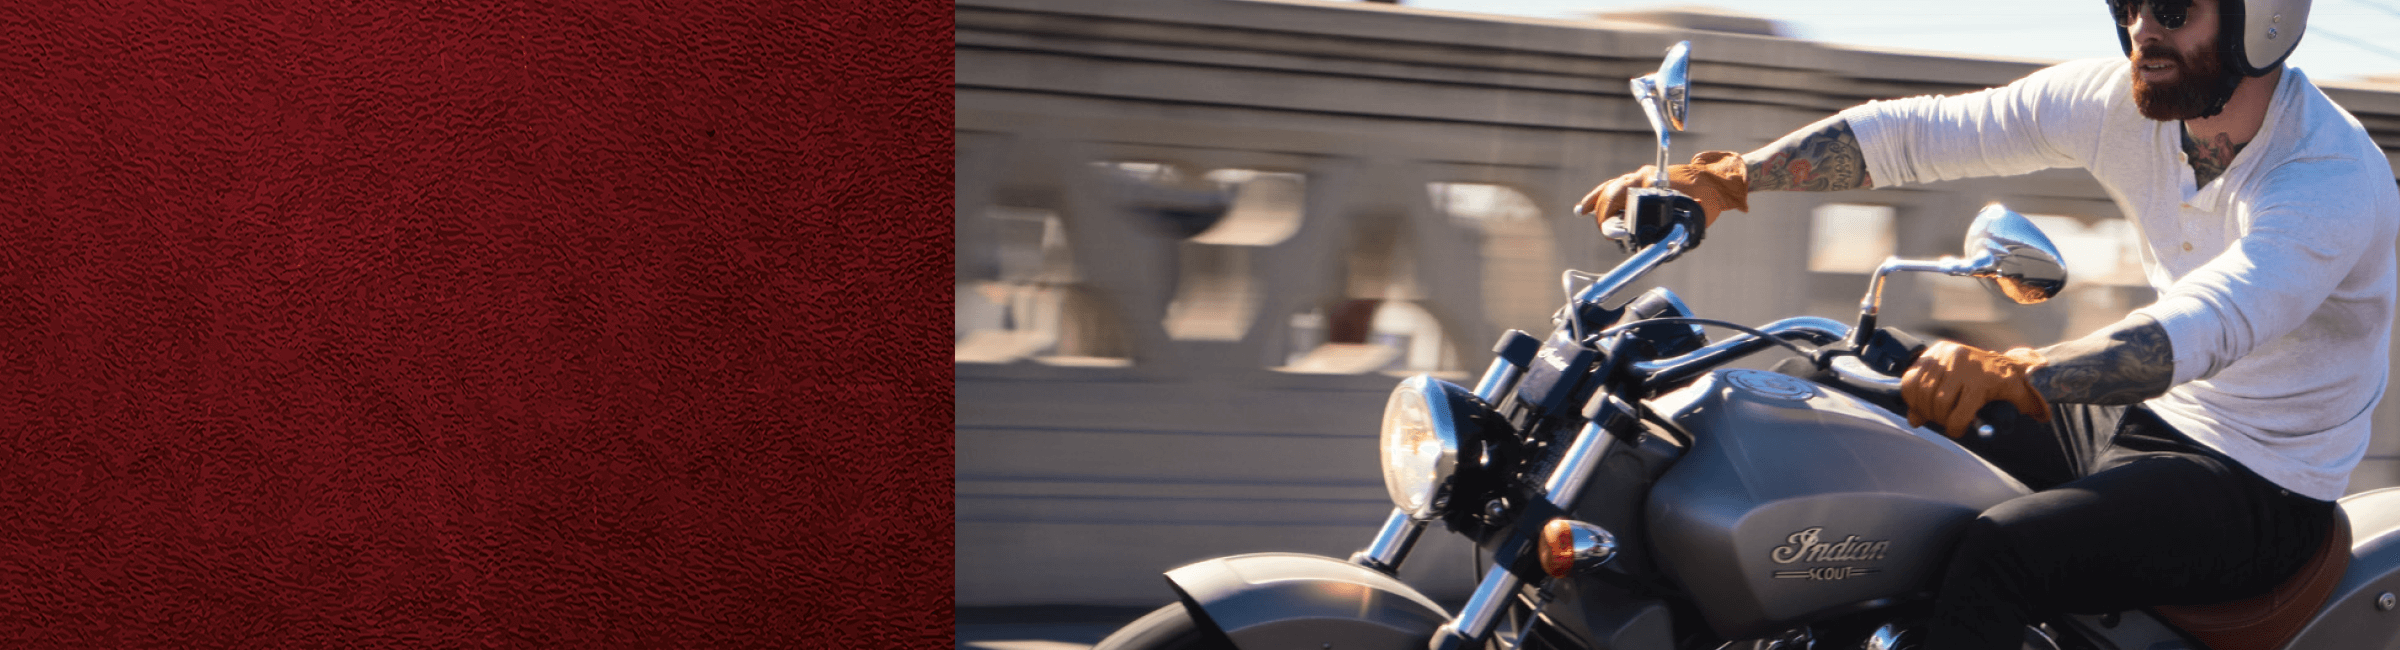 Midsize Indian Motorcycle August 2017